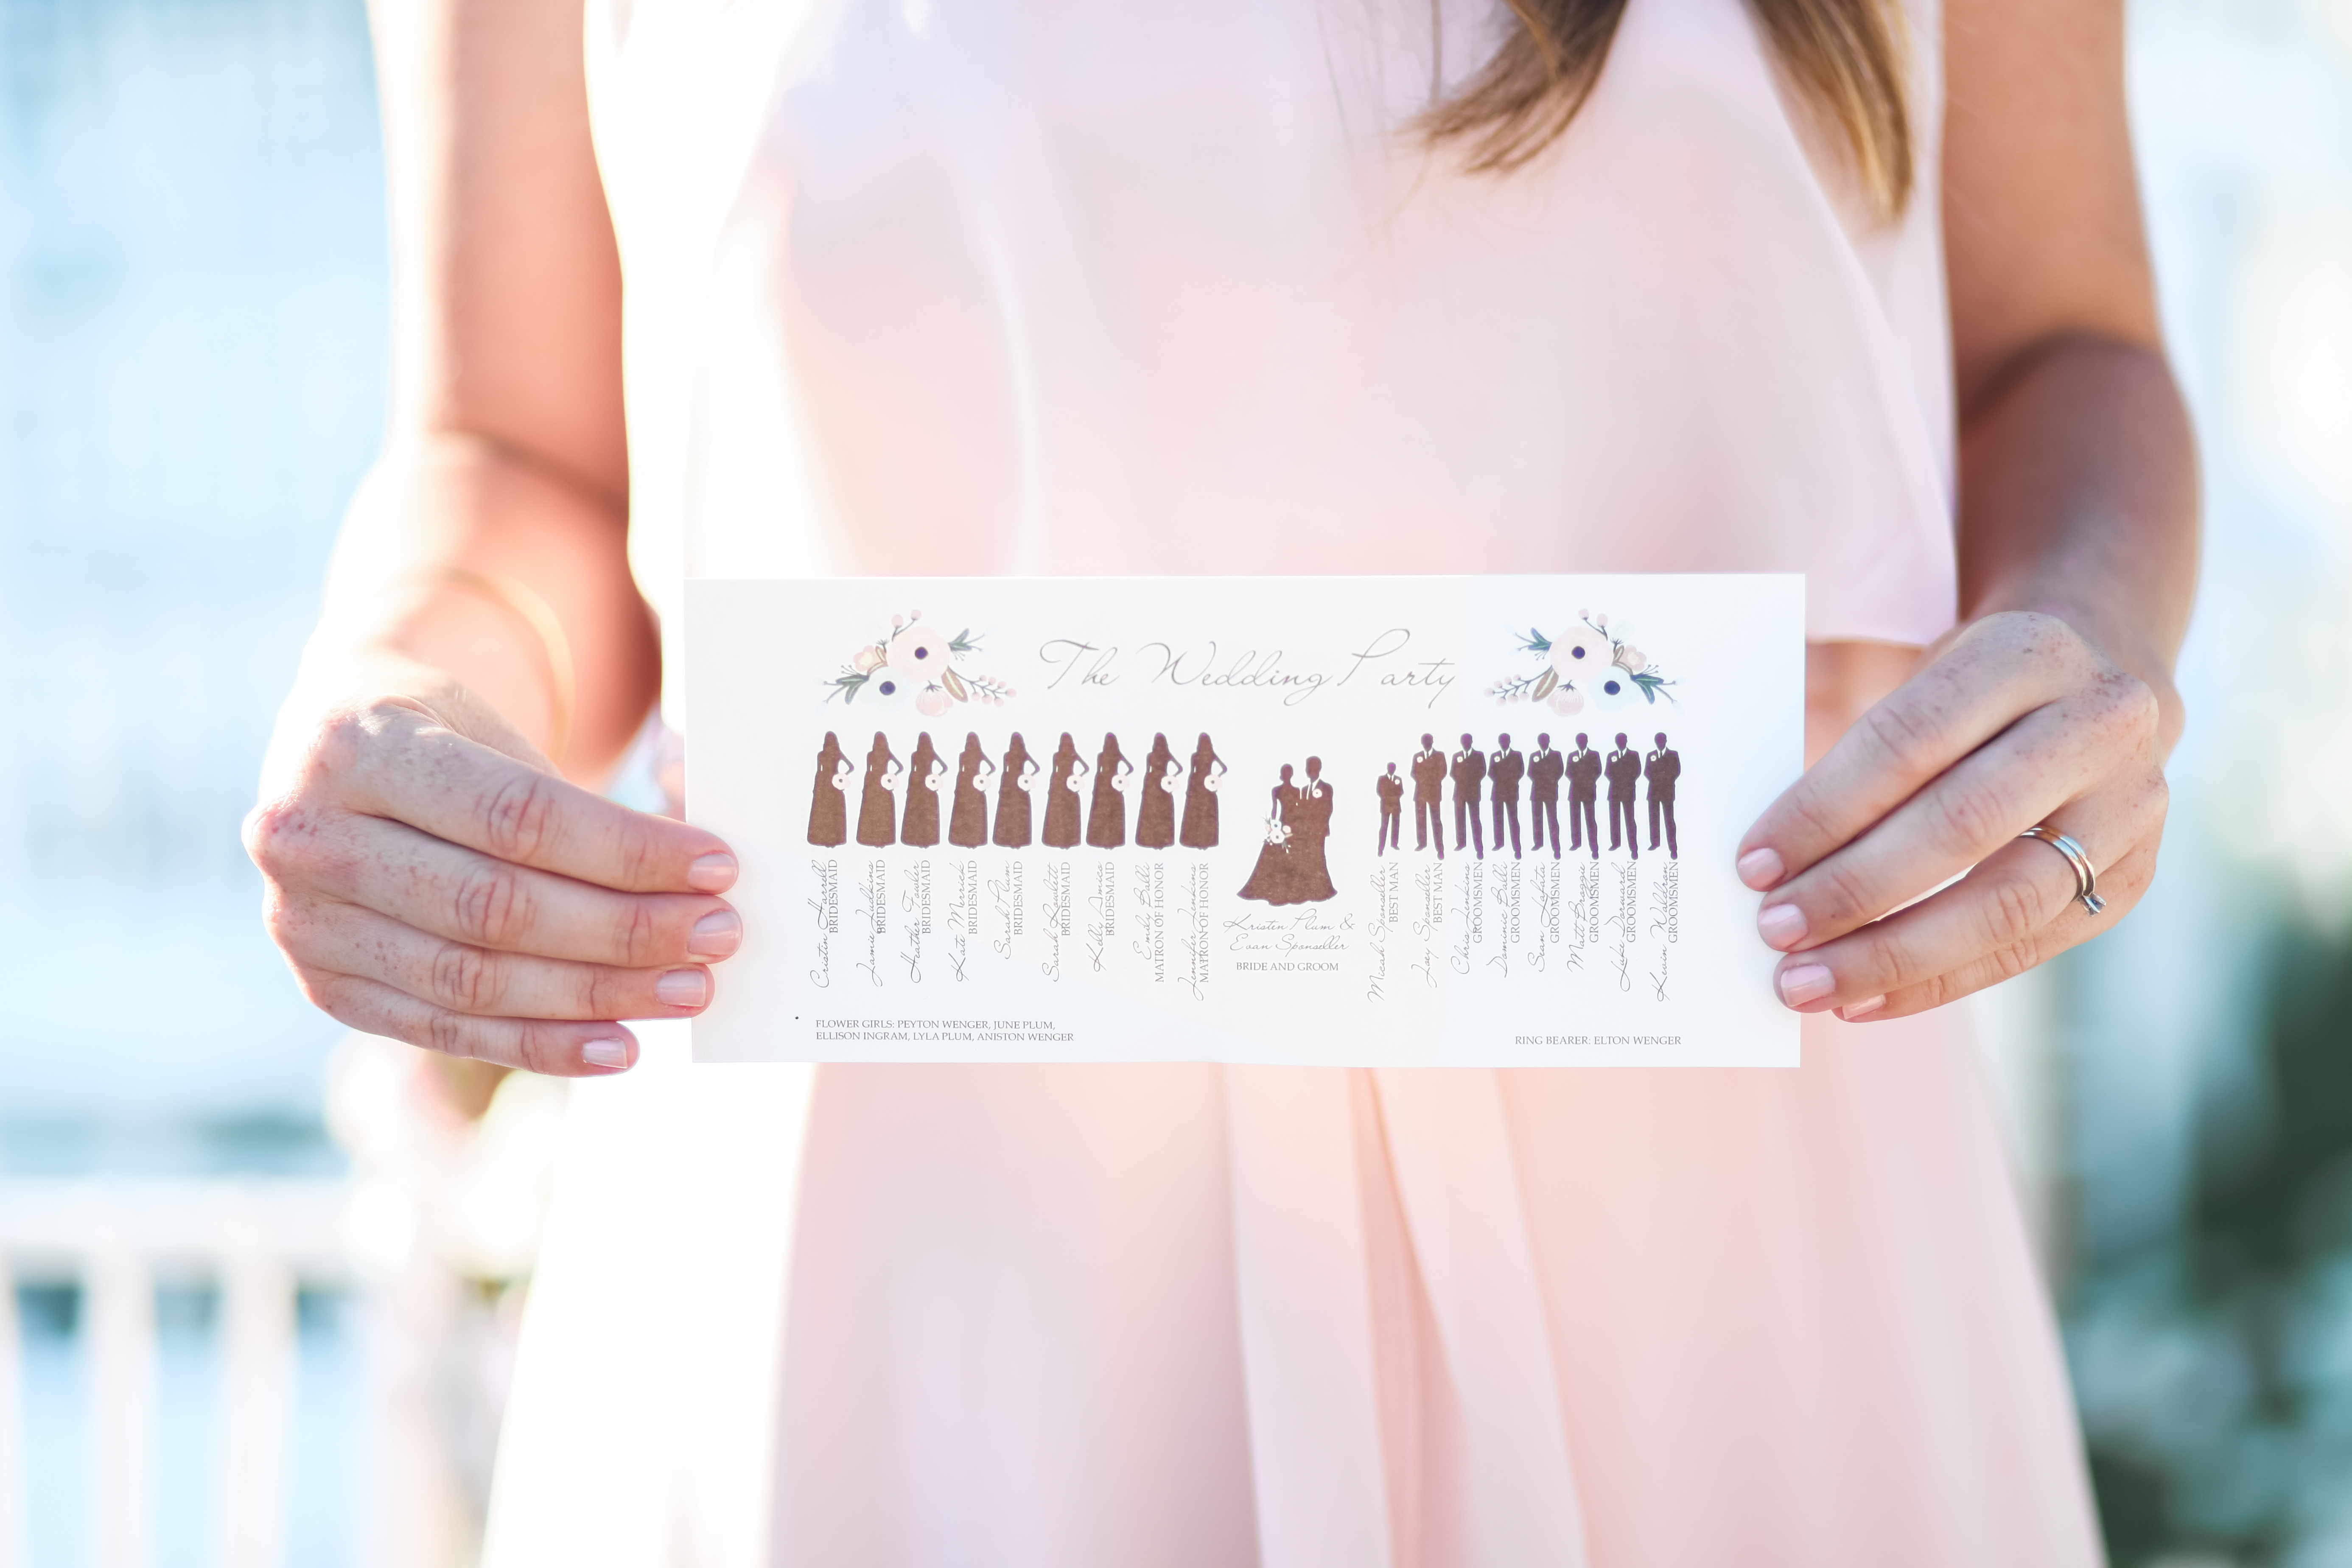 ceremony program with silhouettes